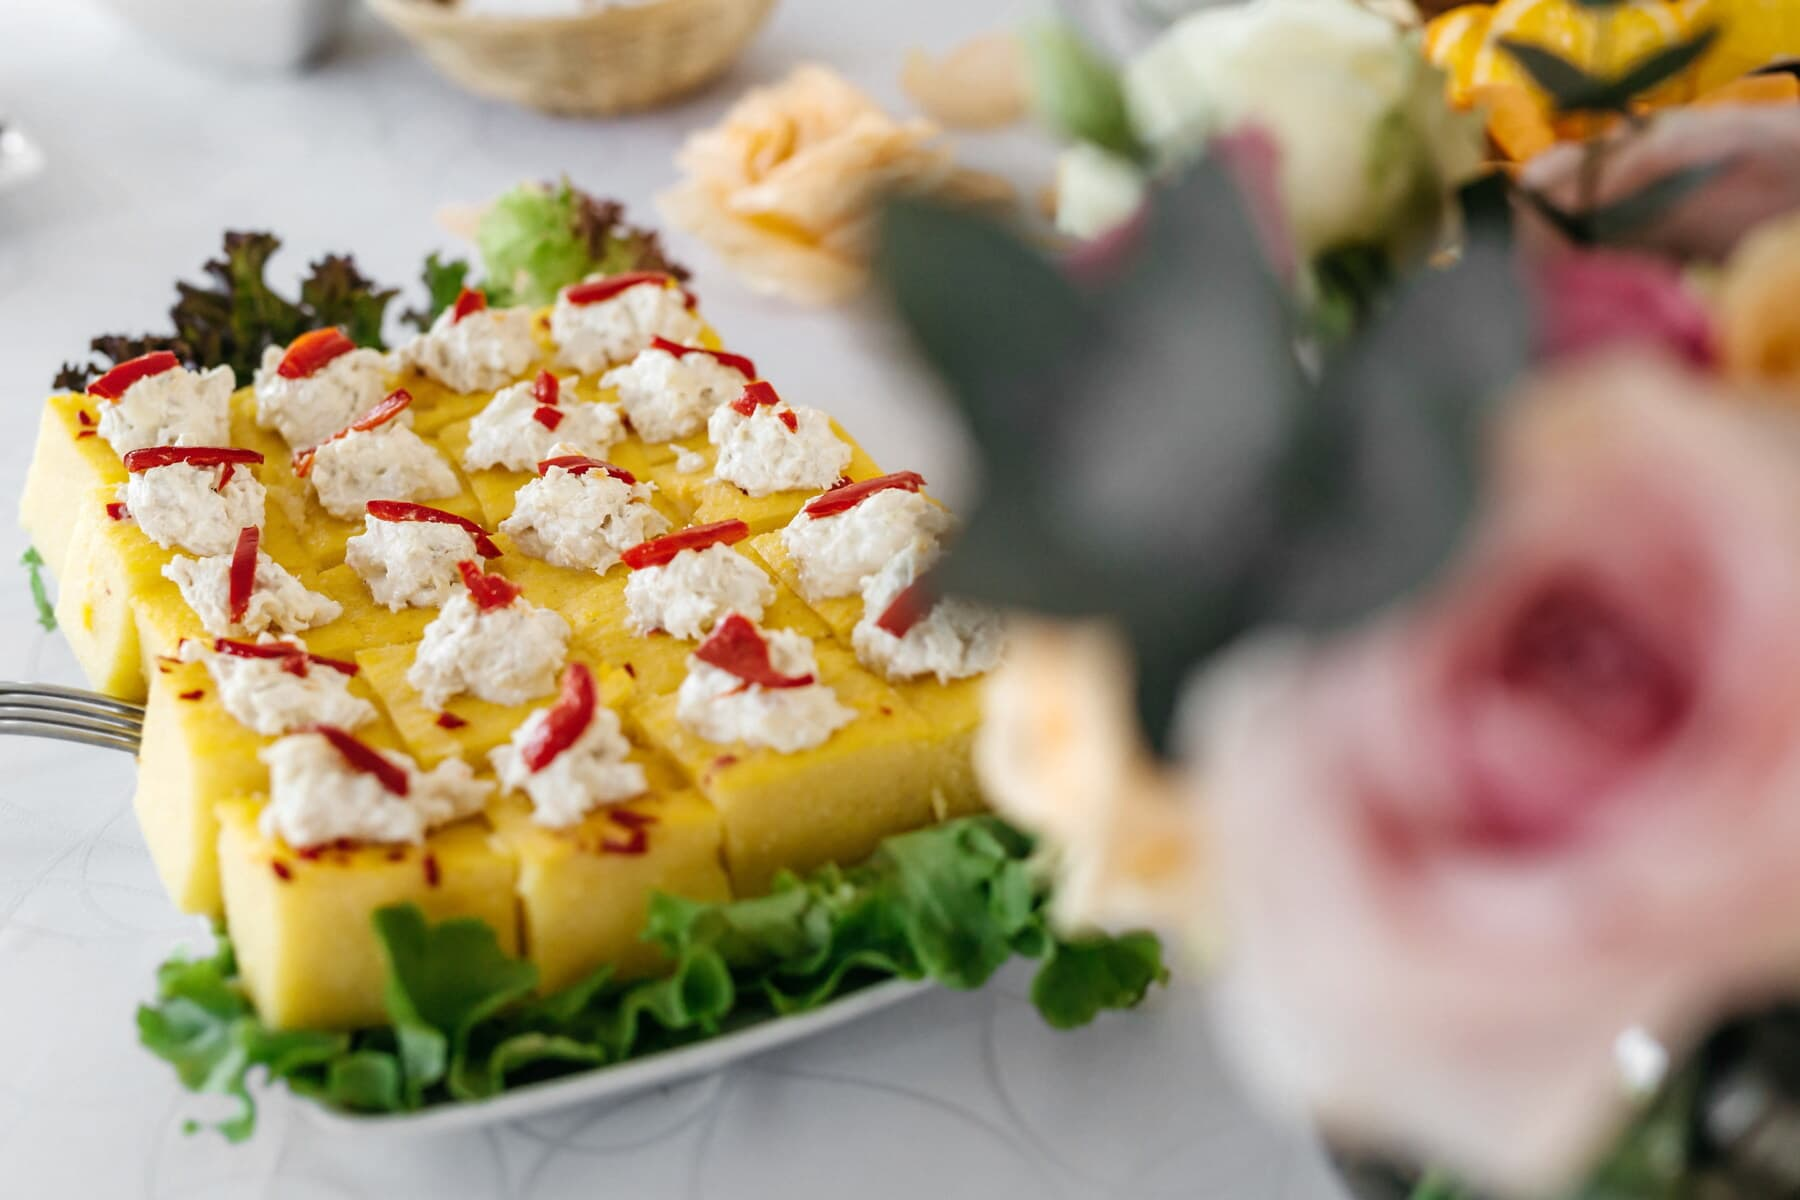 cheesecake, cheese, salad, appetizer, homemade, lettuce, plate, meal, lunch, food